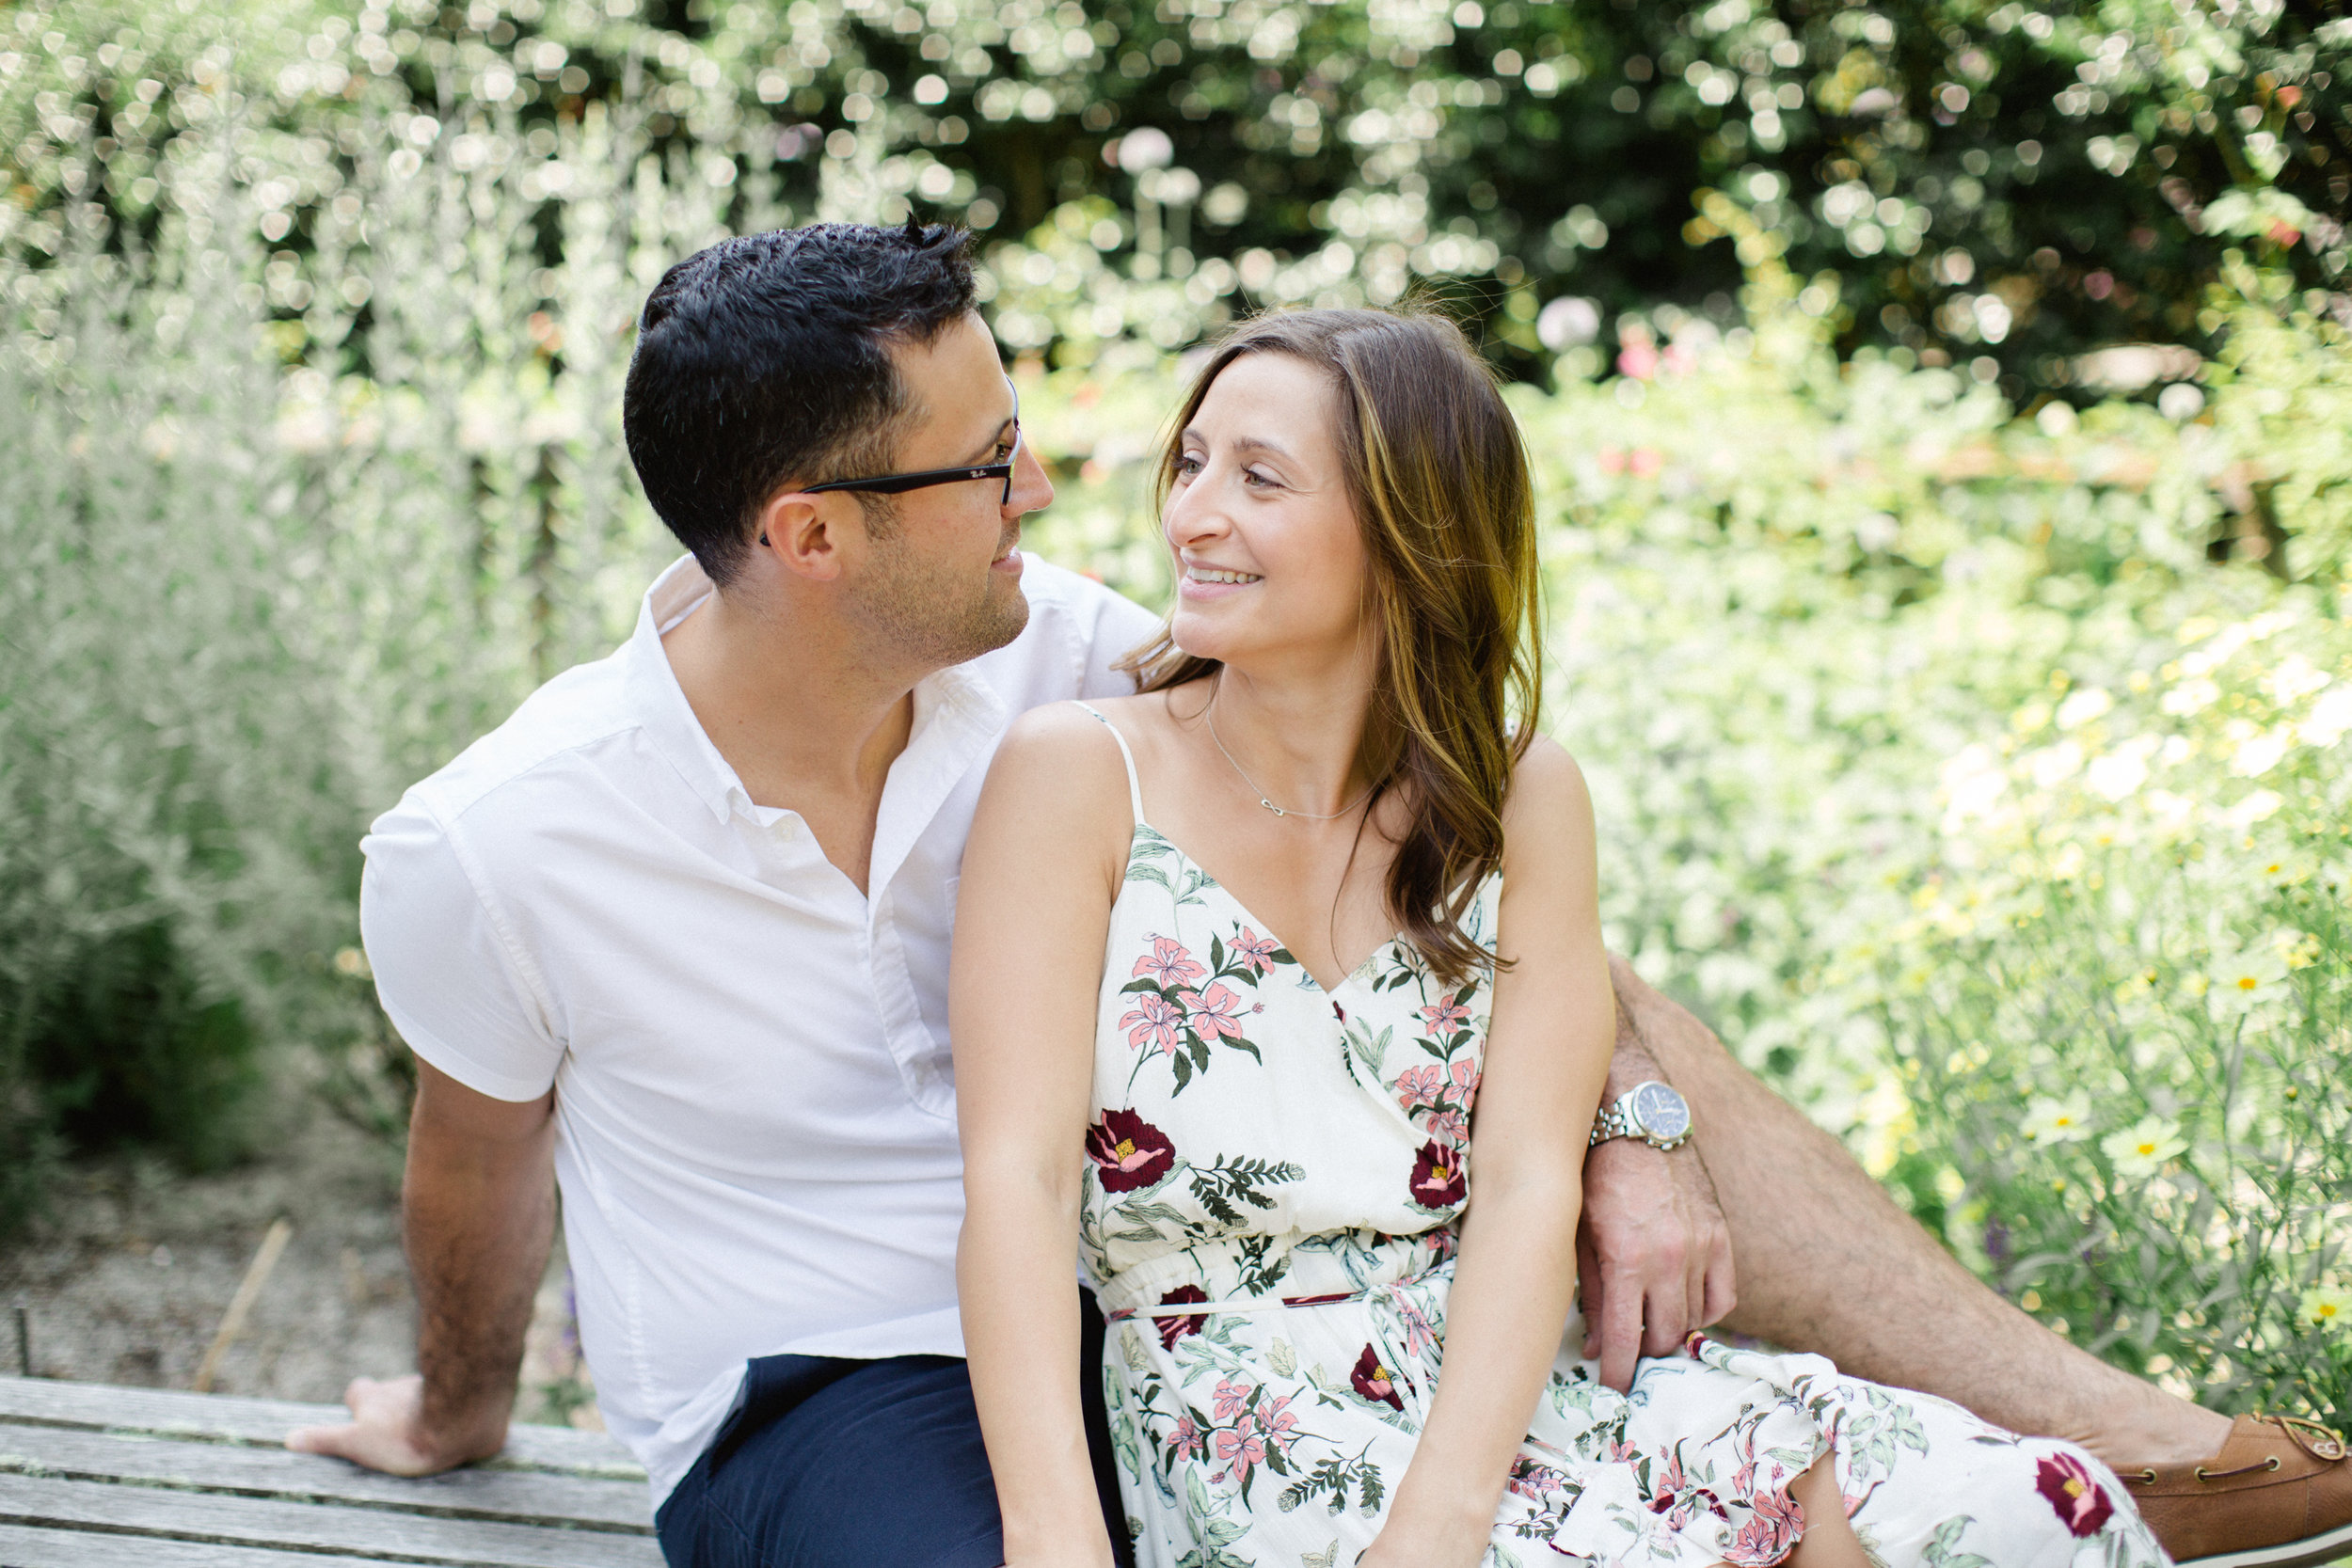 Longwood Gardens Engagement Session Photos_JDP-11.jpg